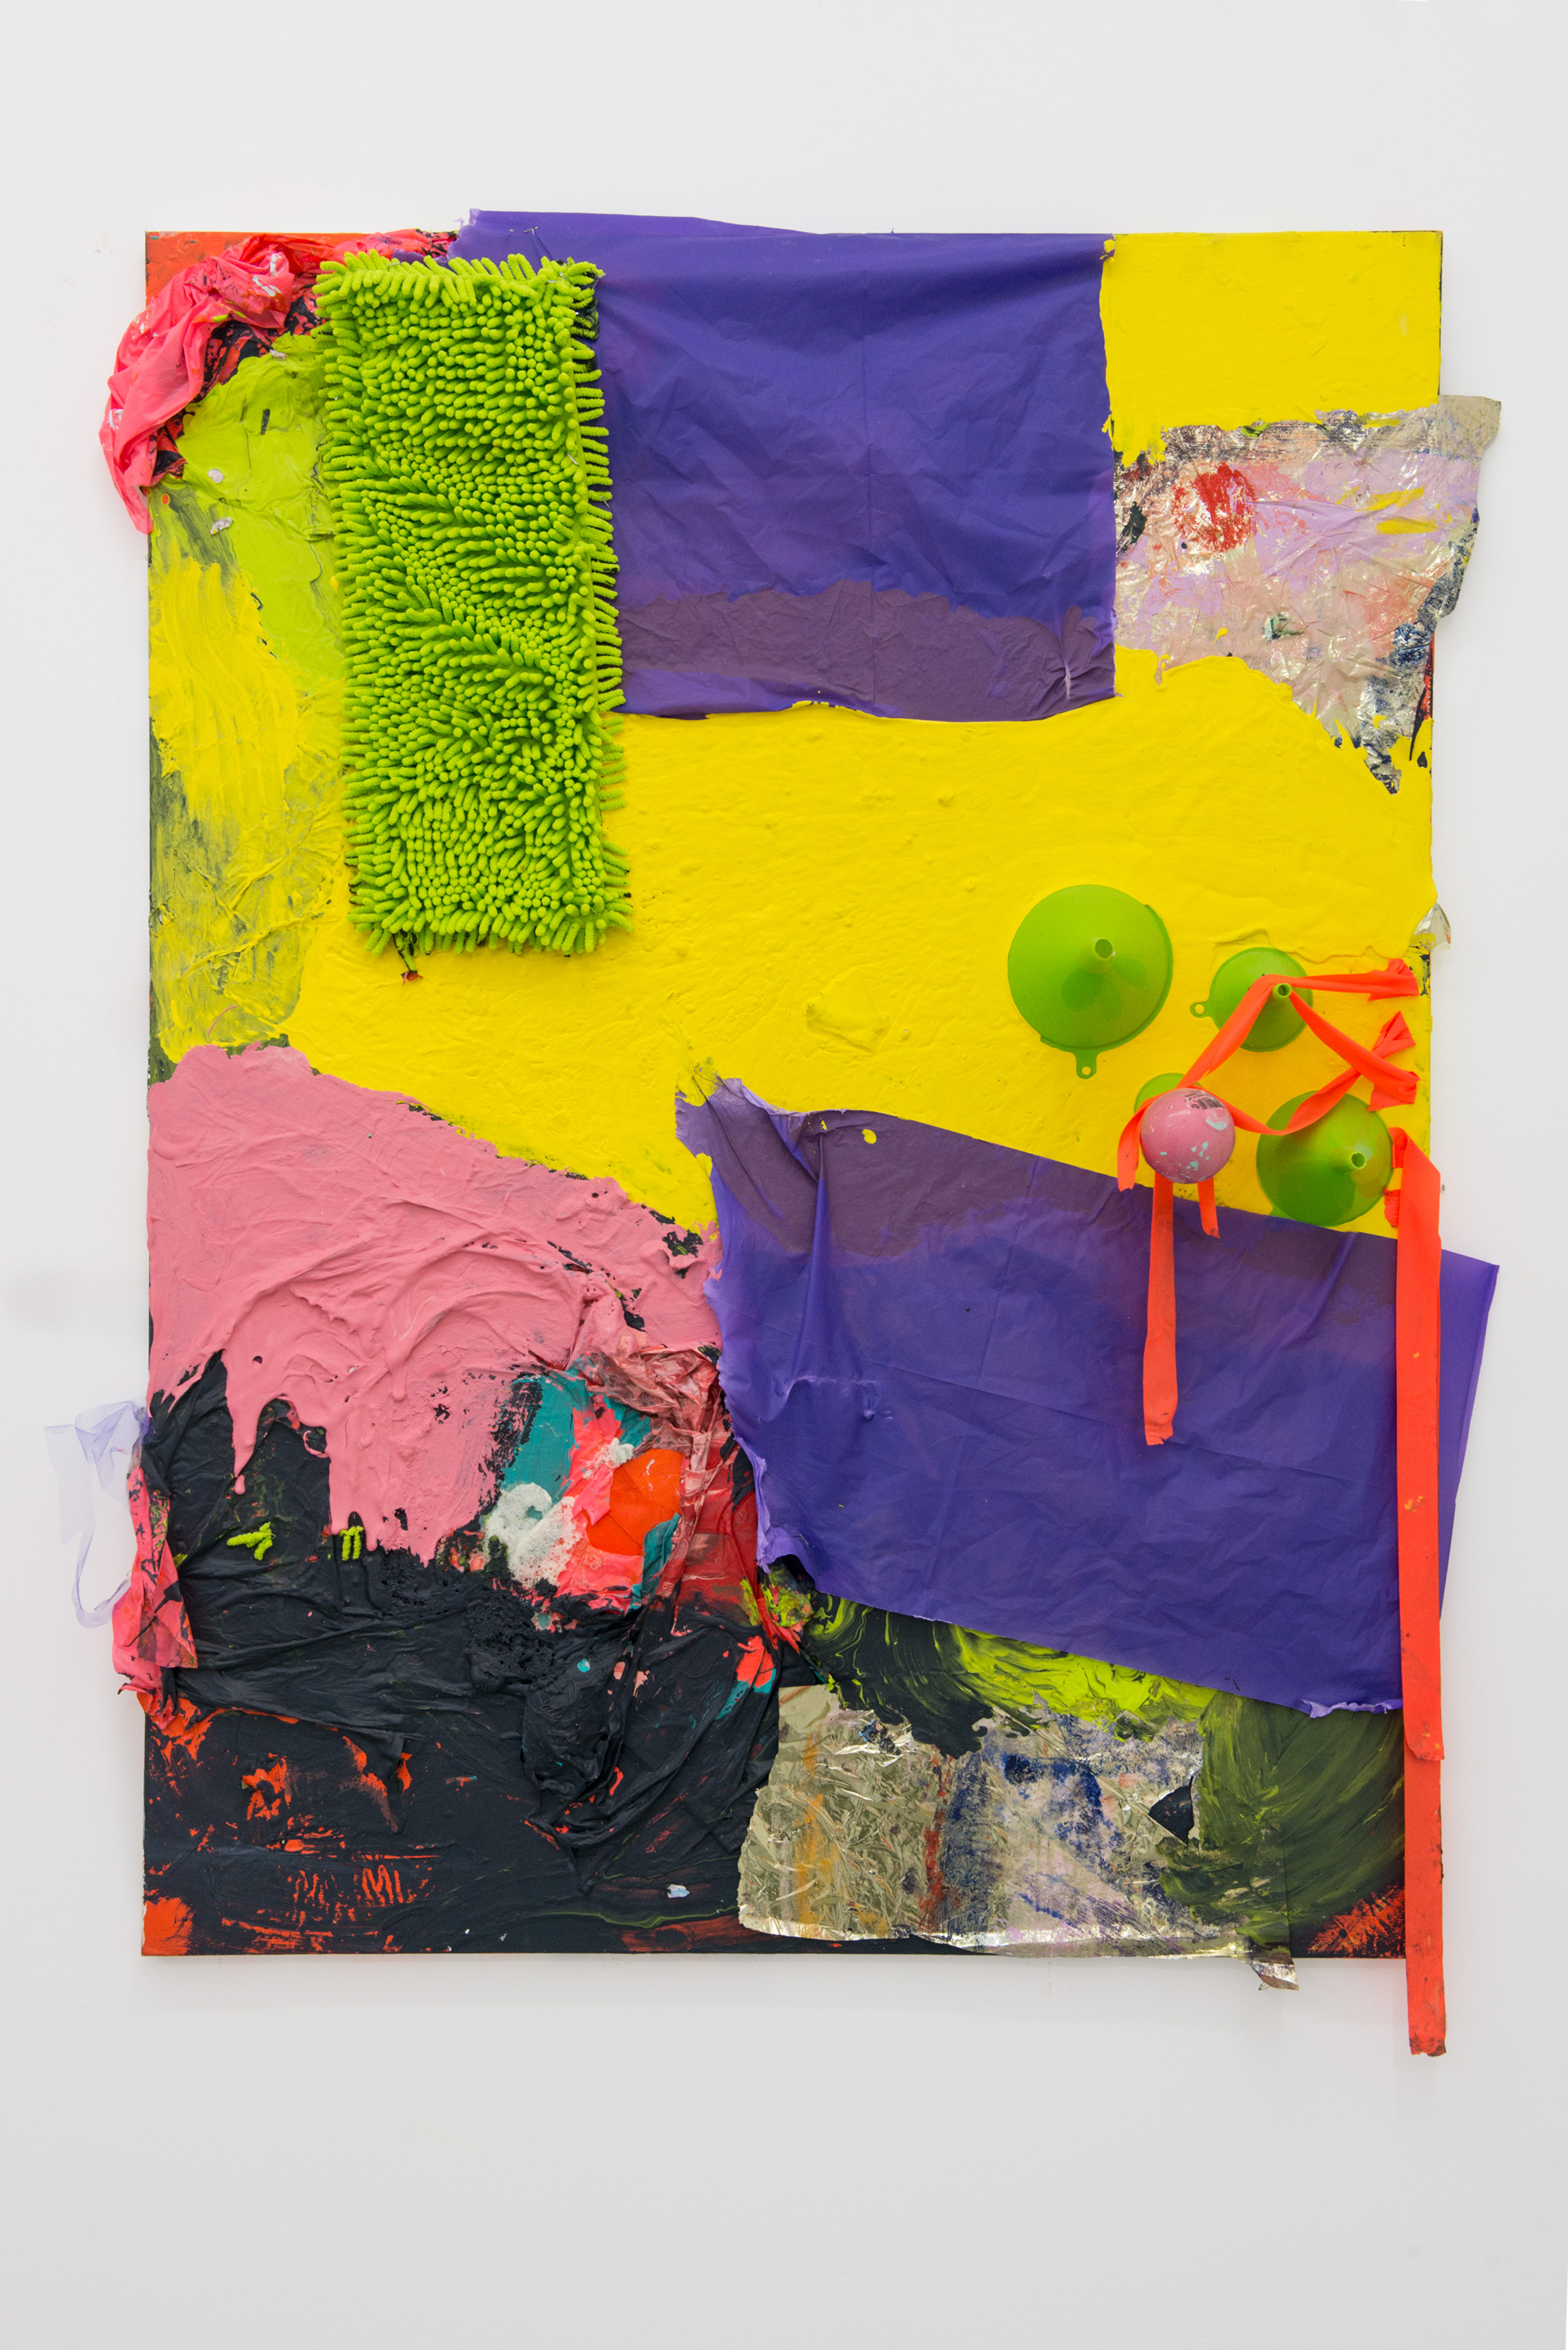 Hannah Beerman green shag, 2015  Mylar wrapping paper, acrylic paint, house paint, found materials, glass beads